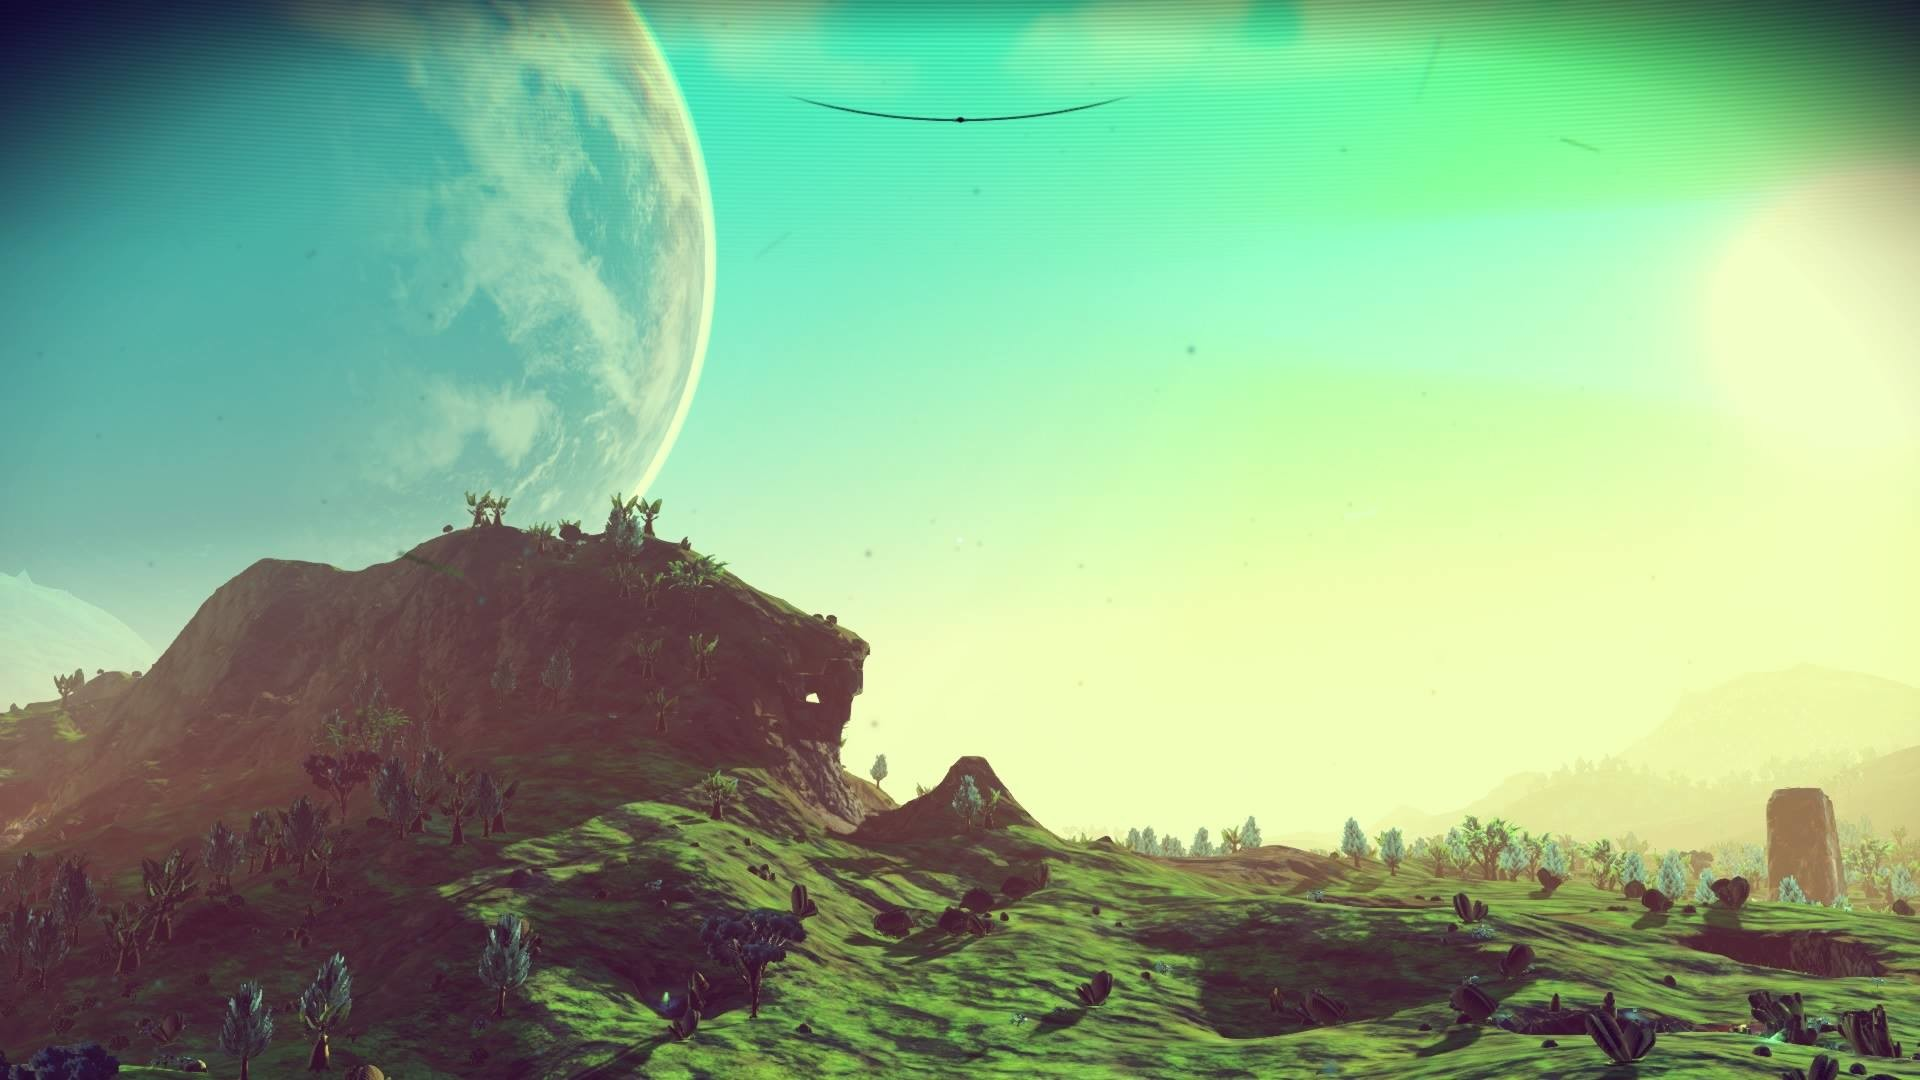 No Mans Sky Pics Hd 2384359 Hd Wallpaper Backgrounds Download